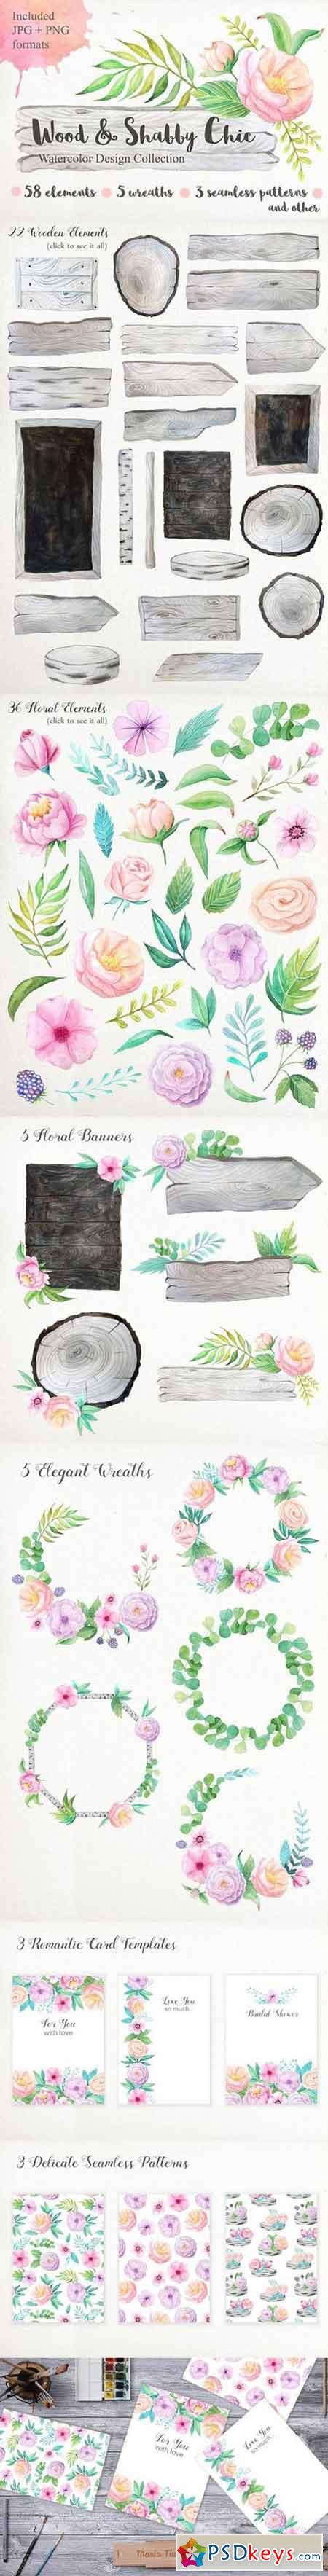 Shabby Chic Watercolor Pack 642123